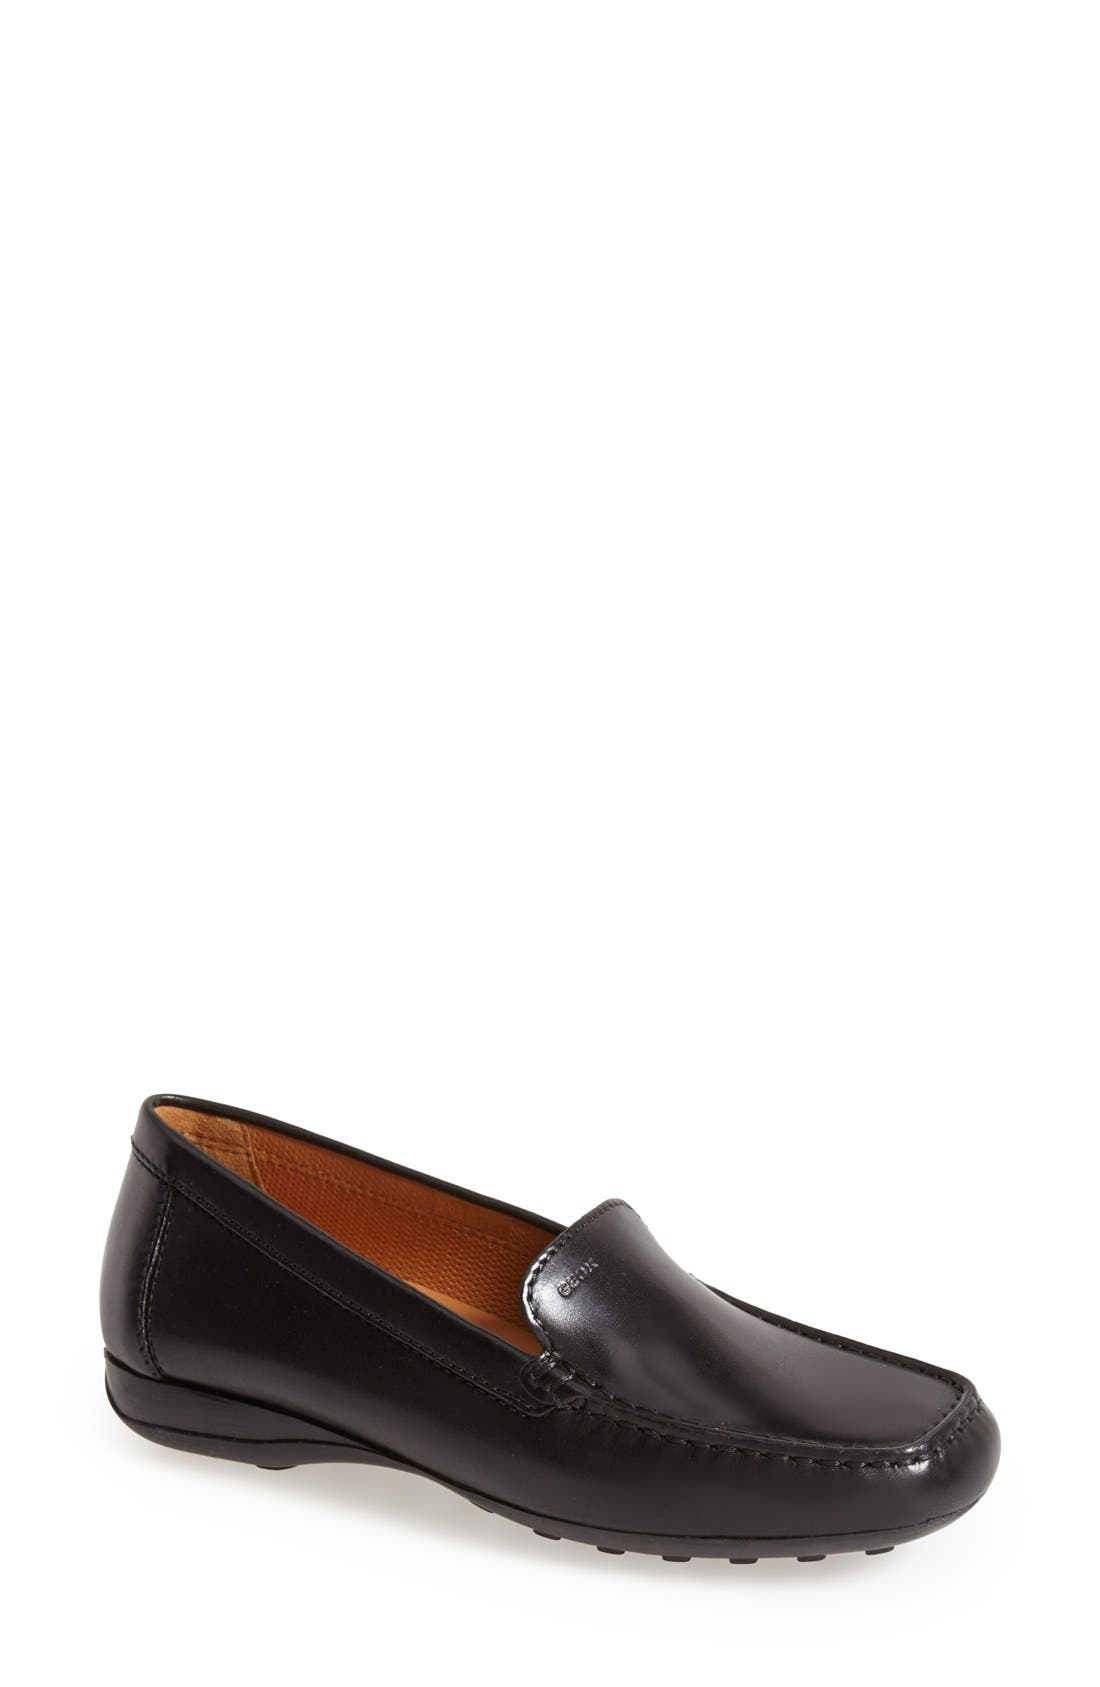 Alternate Image 1 Selected - Geox 'Euro 18' Loafer (Women)